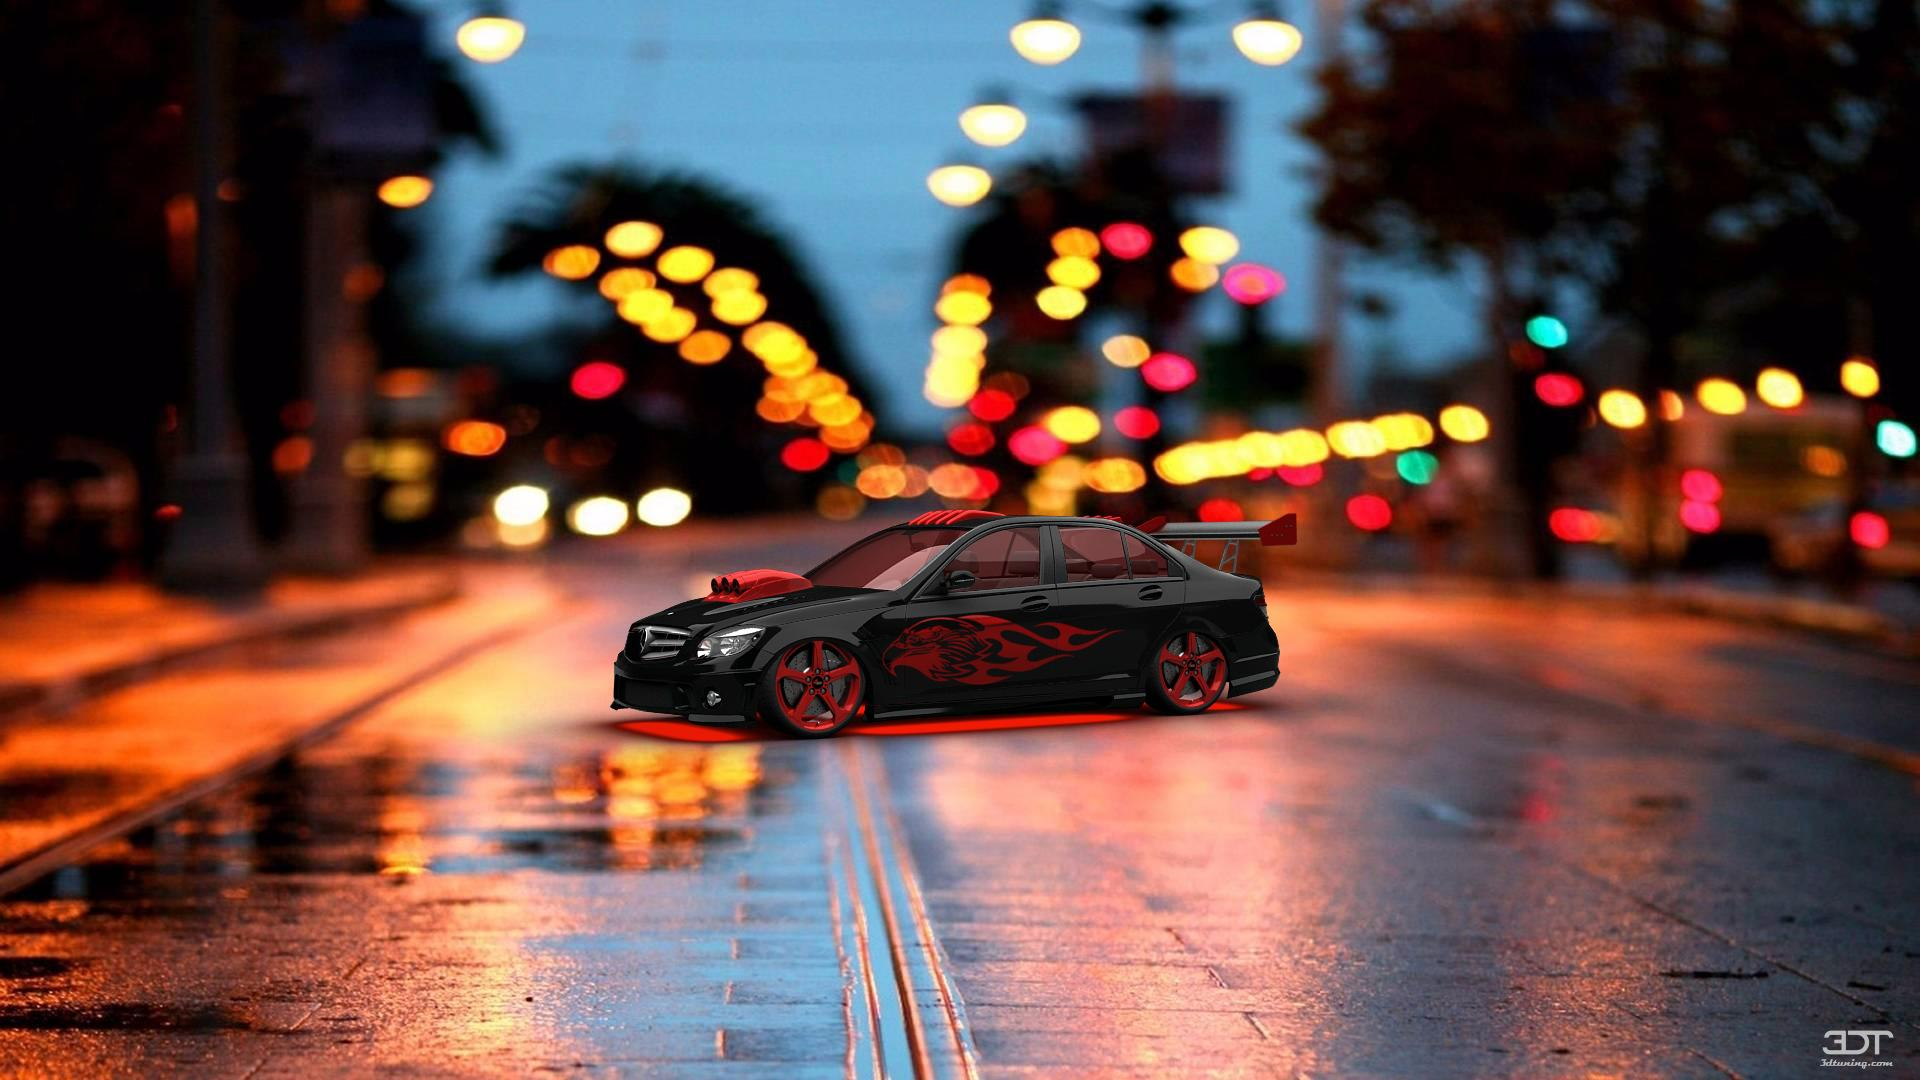 Checkout-my-tuning-Mercedes-Cclass-at-3dTuning-3dtuning-tuning-rea-virus-fargo-wallpaper-wp3604018